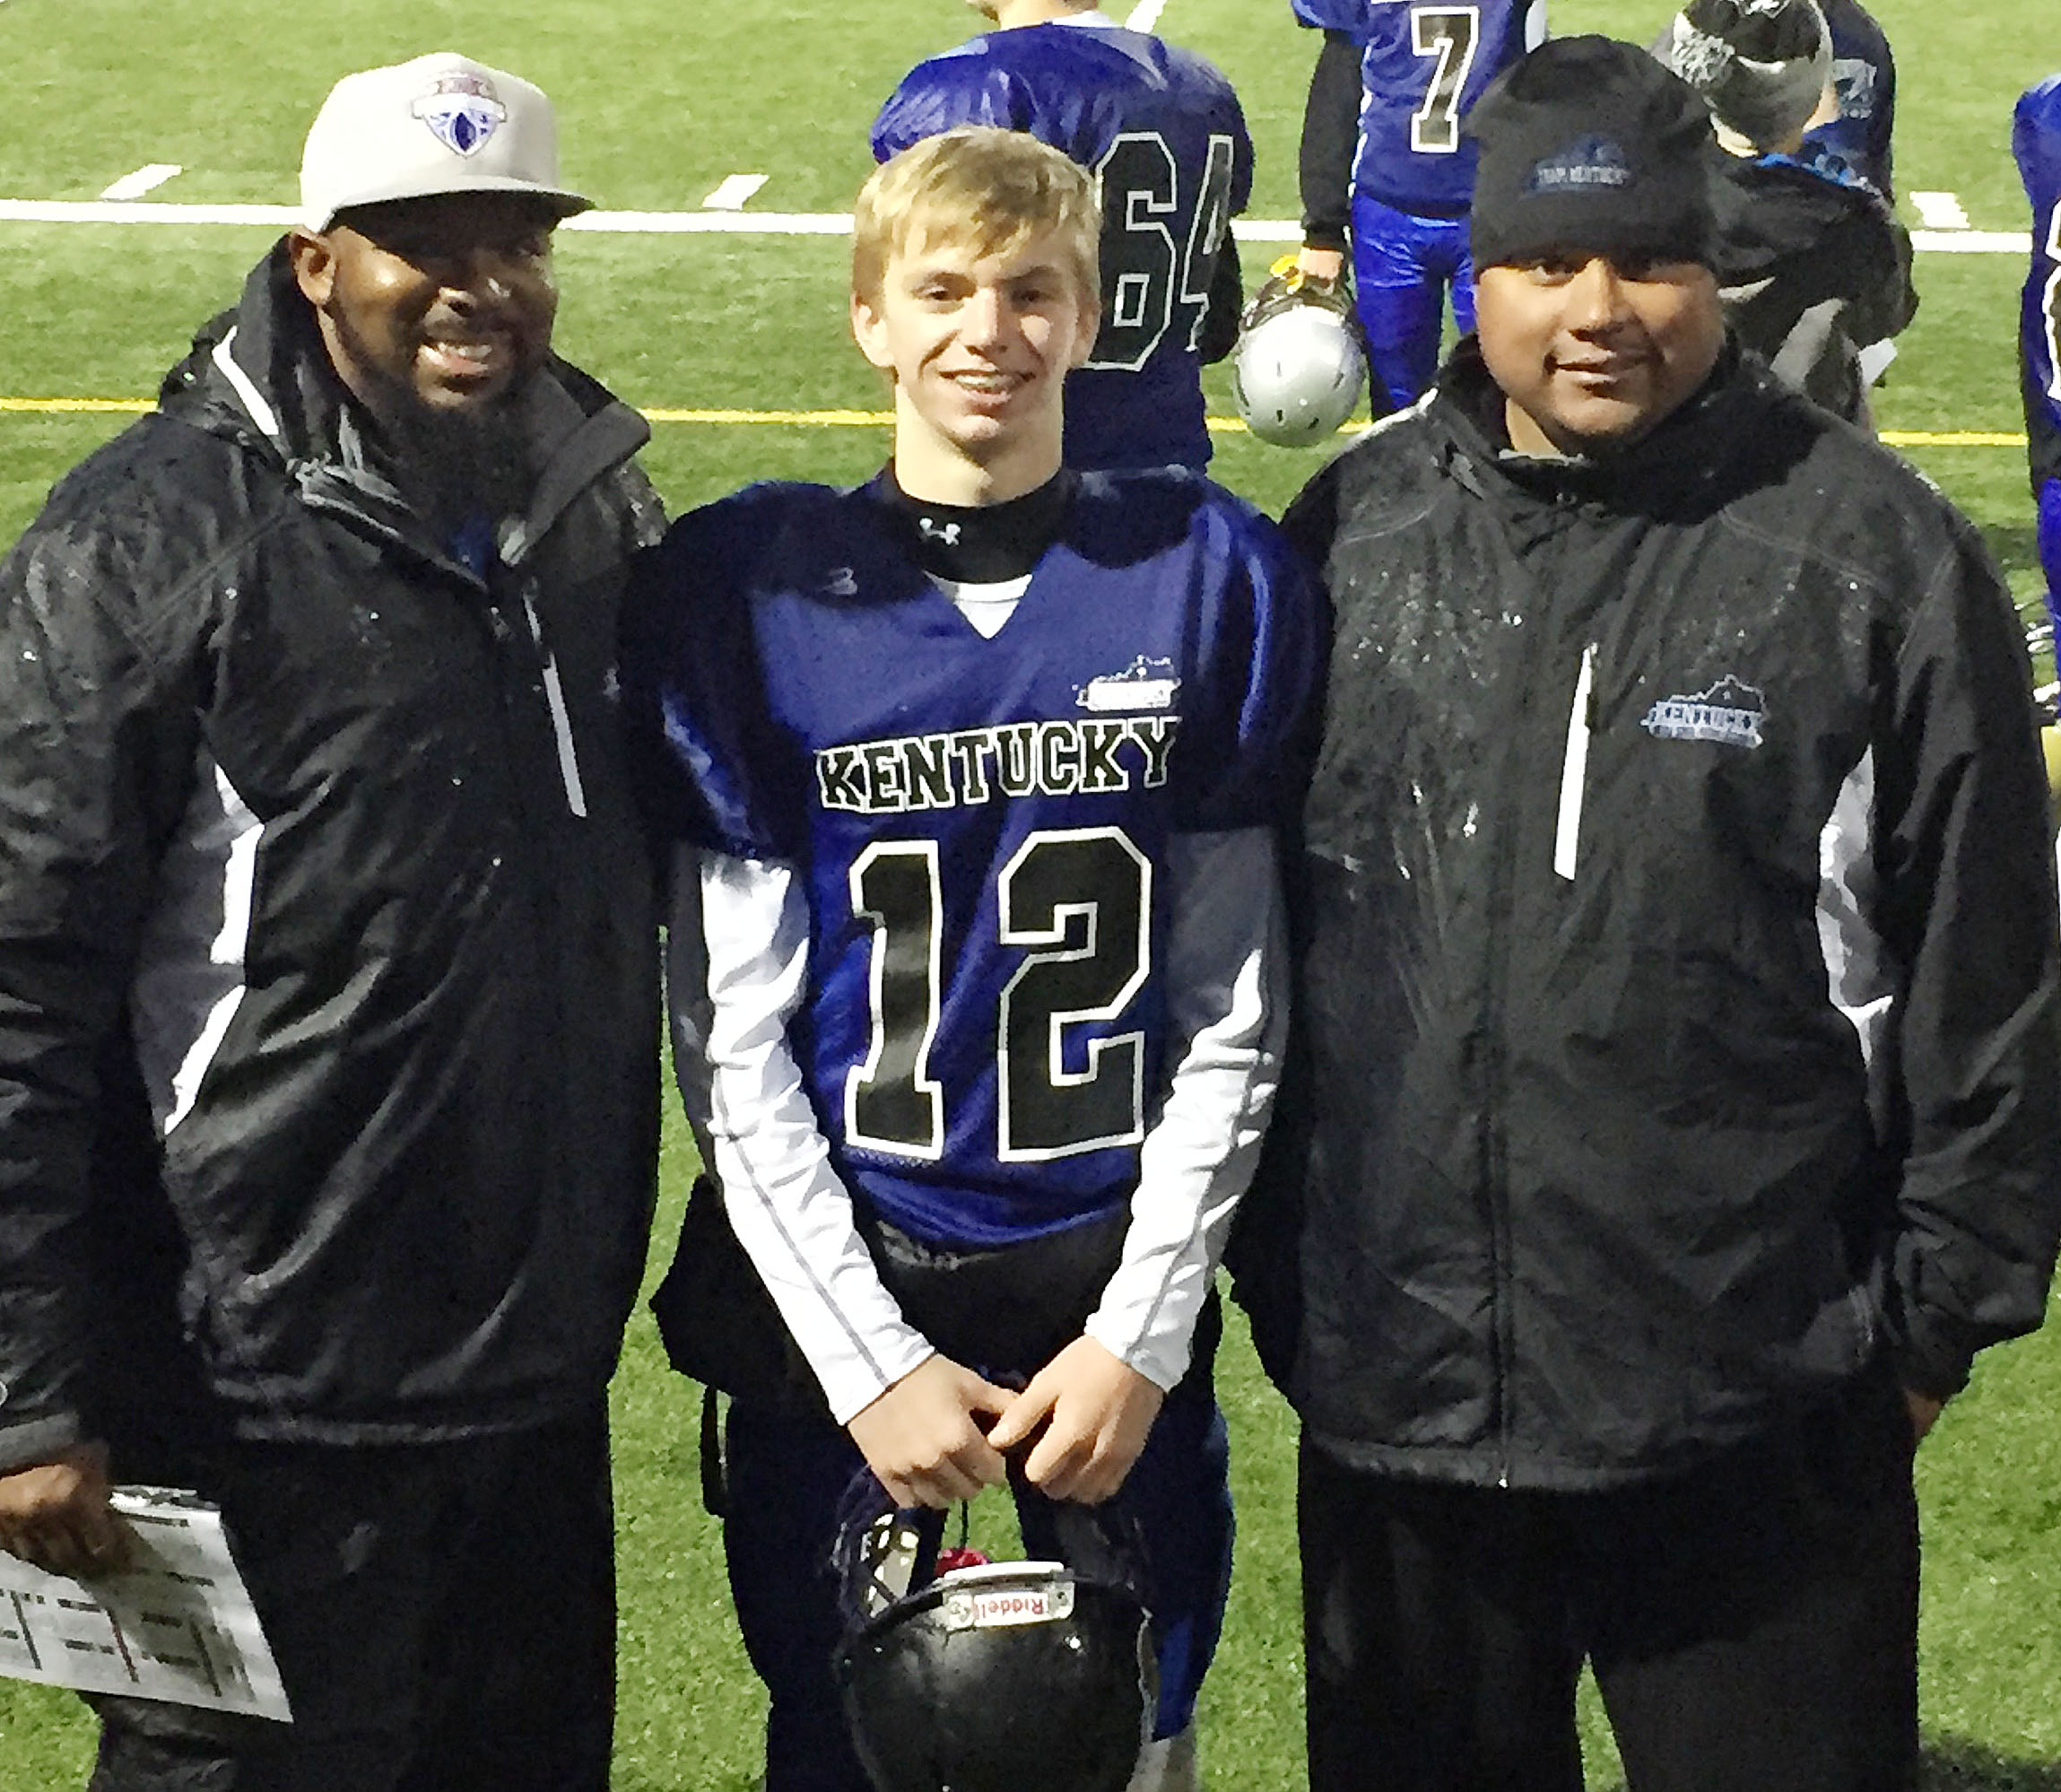 Campbellsville Middle School eighth-grader and football player Arren Hash was named to Football University's national Team Kentucky, and the team has won all of its games, to advance to the nationals. Will Griffin, at left, and Bronson Gowdy, who help coach the CMS football team, are offensive coordinator for the team and coordinator for FBU, respectively.